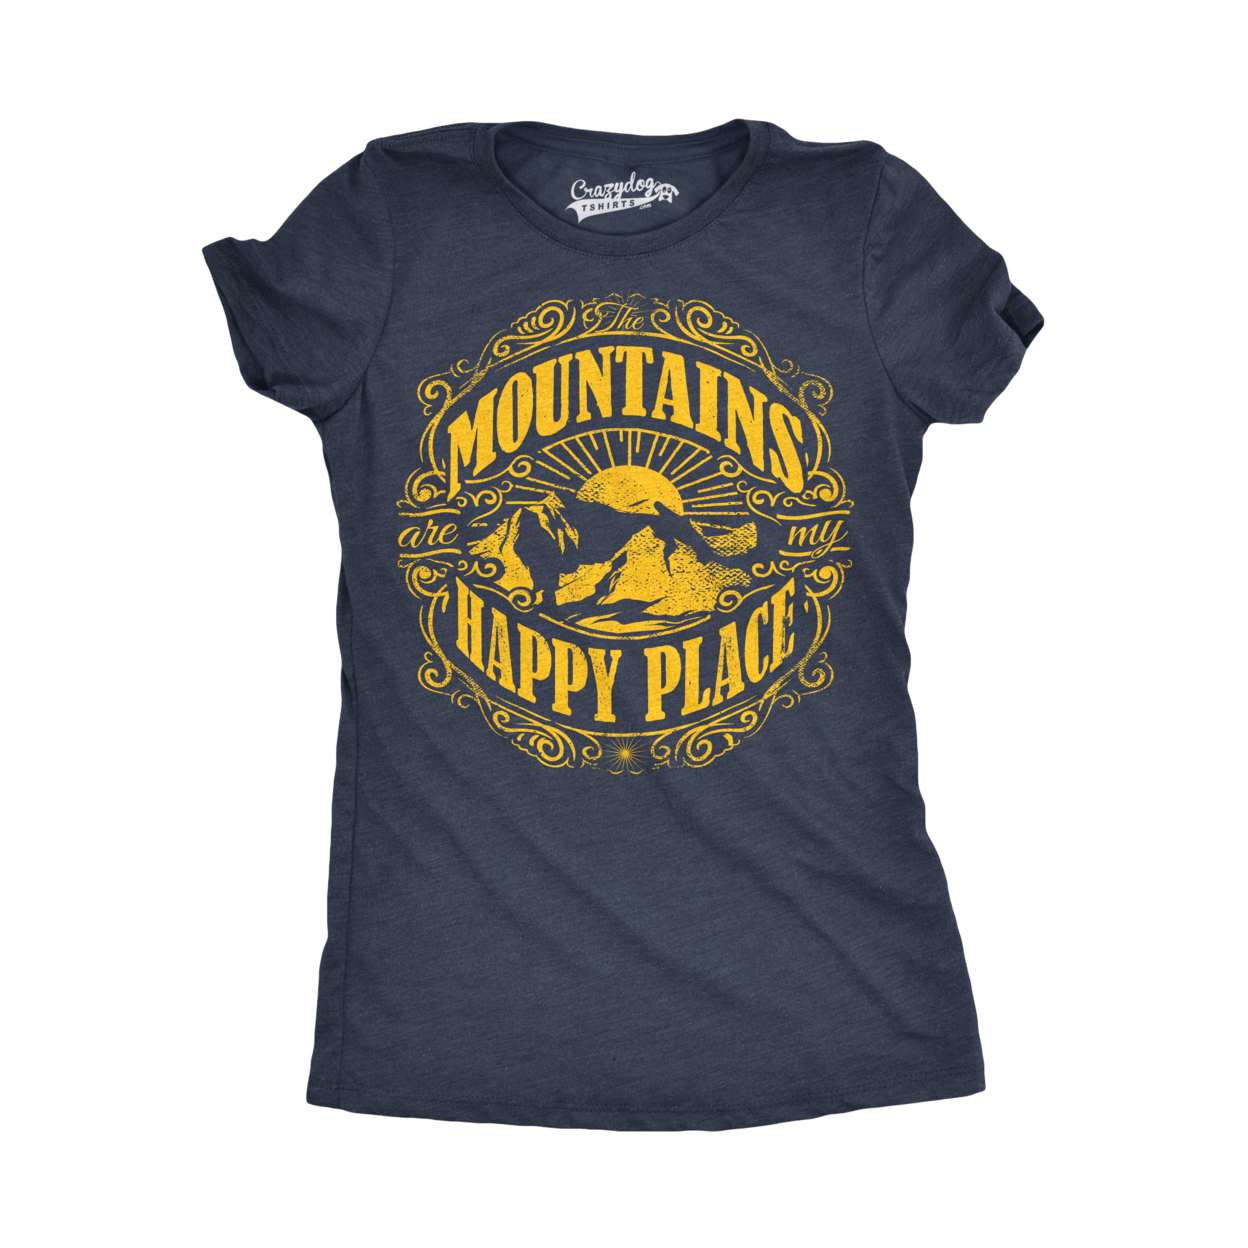 Womens Mountains Are My Happy Place Cool Vintage Rockies Outdoor Nature T shirt 5934a0f22a00e412bc131dae